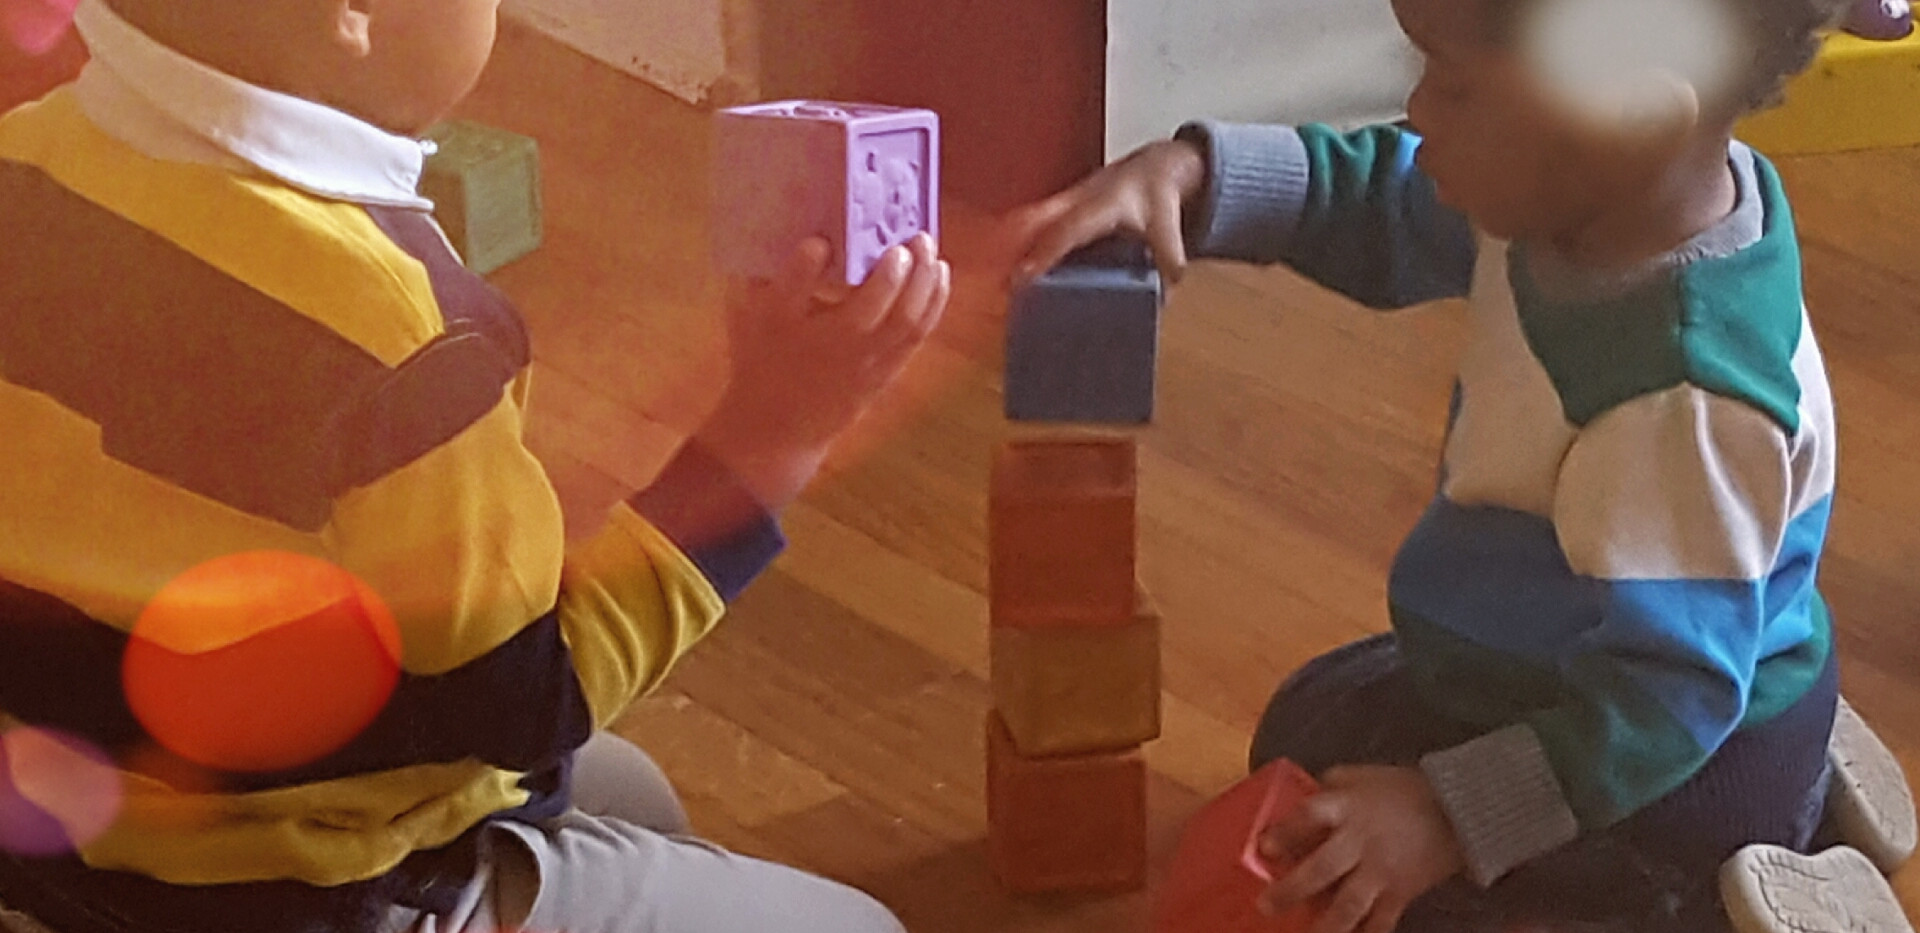 Building w/blocks